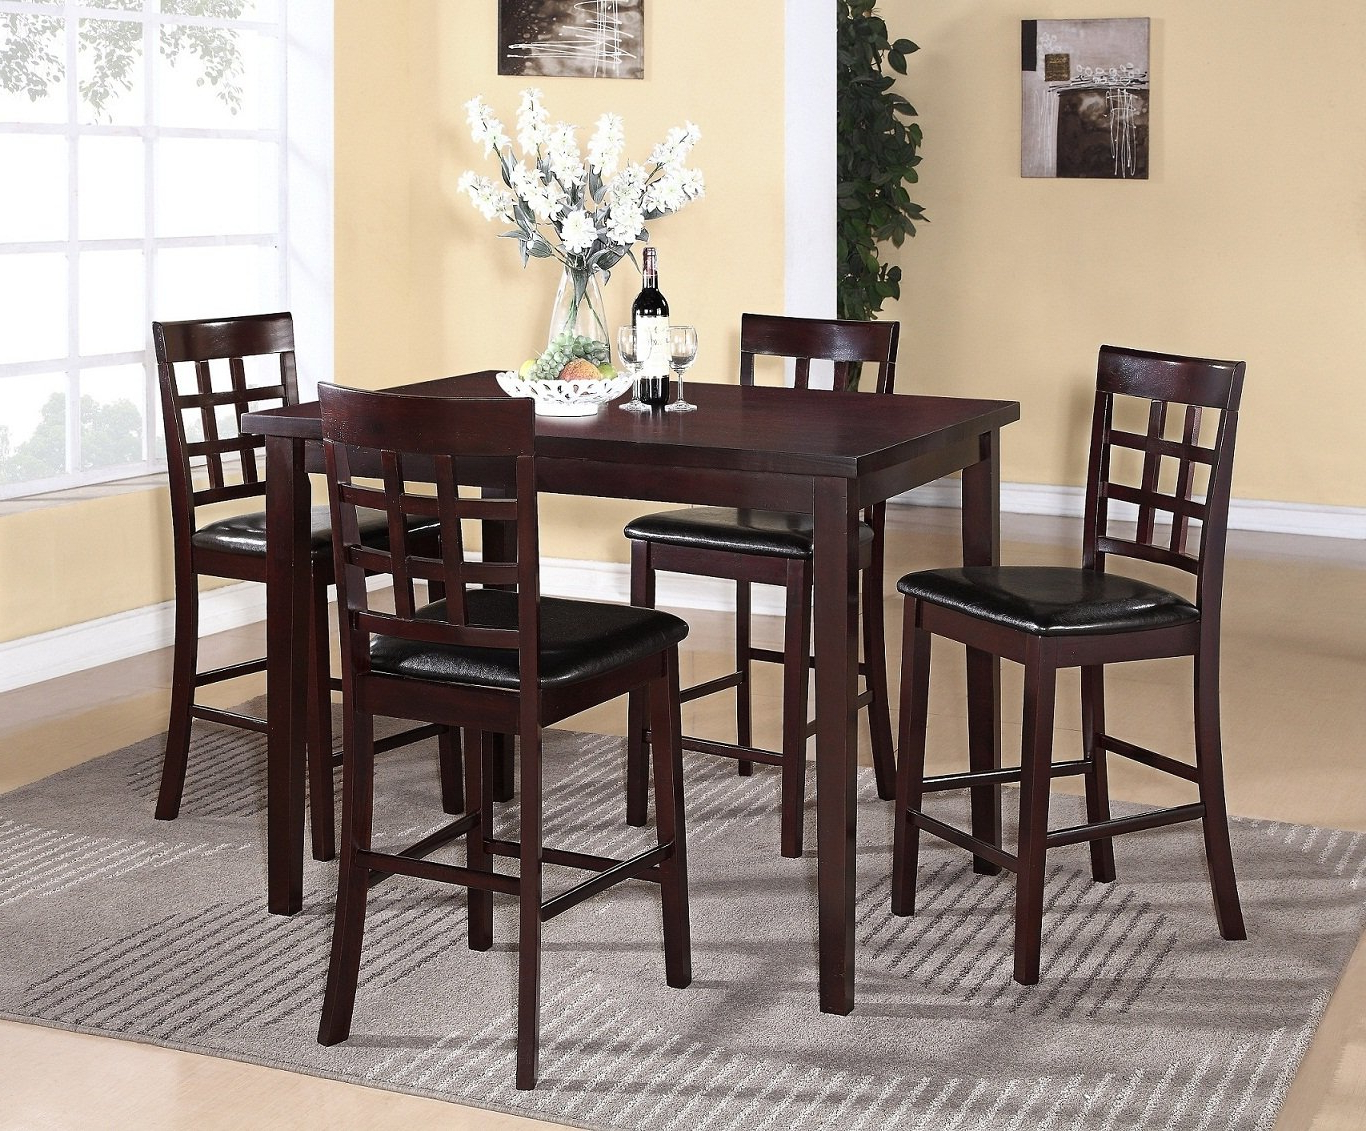 Espresso Finish Wood Classic Design Dining Tables Inside Most Up To Date Poka 5Pc Espresso Finish Rectangle Wood Counter Height Dining Set (View 2 of 17)